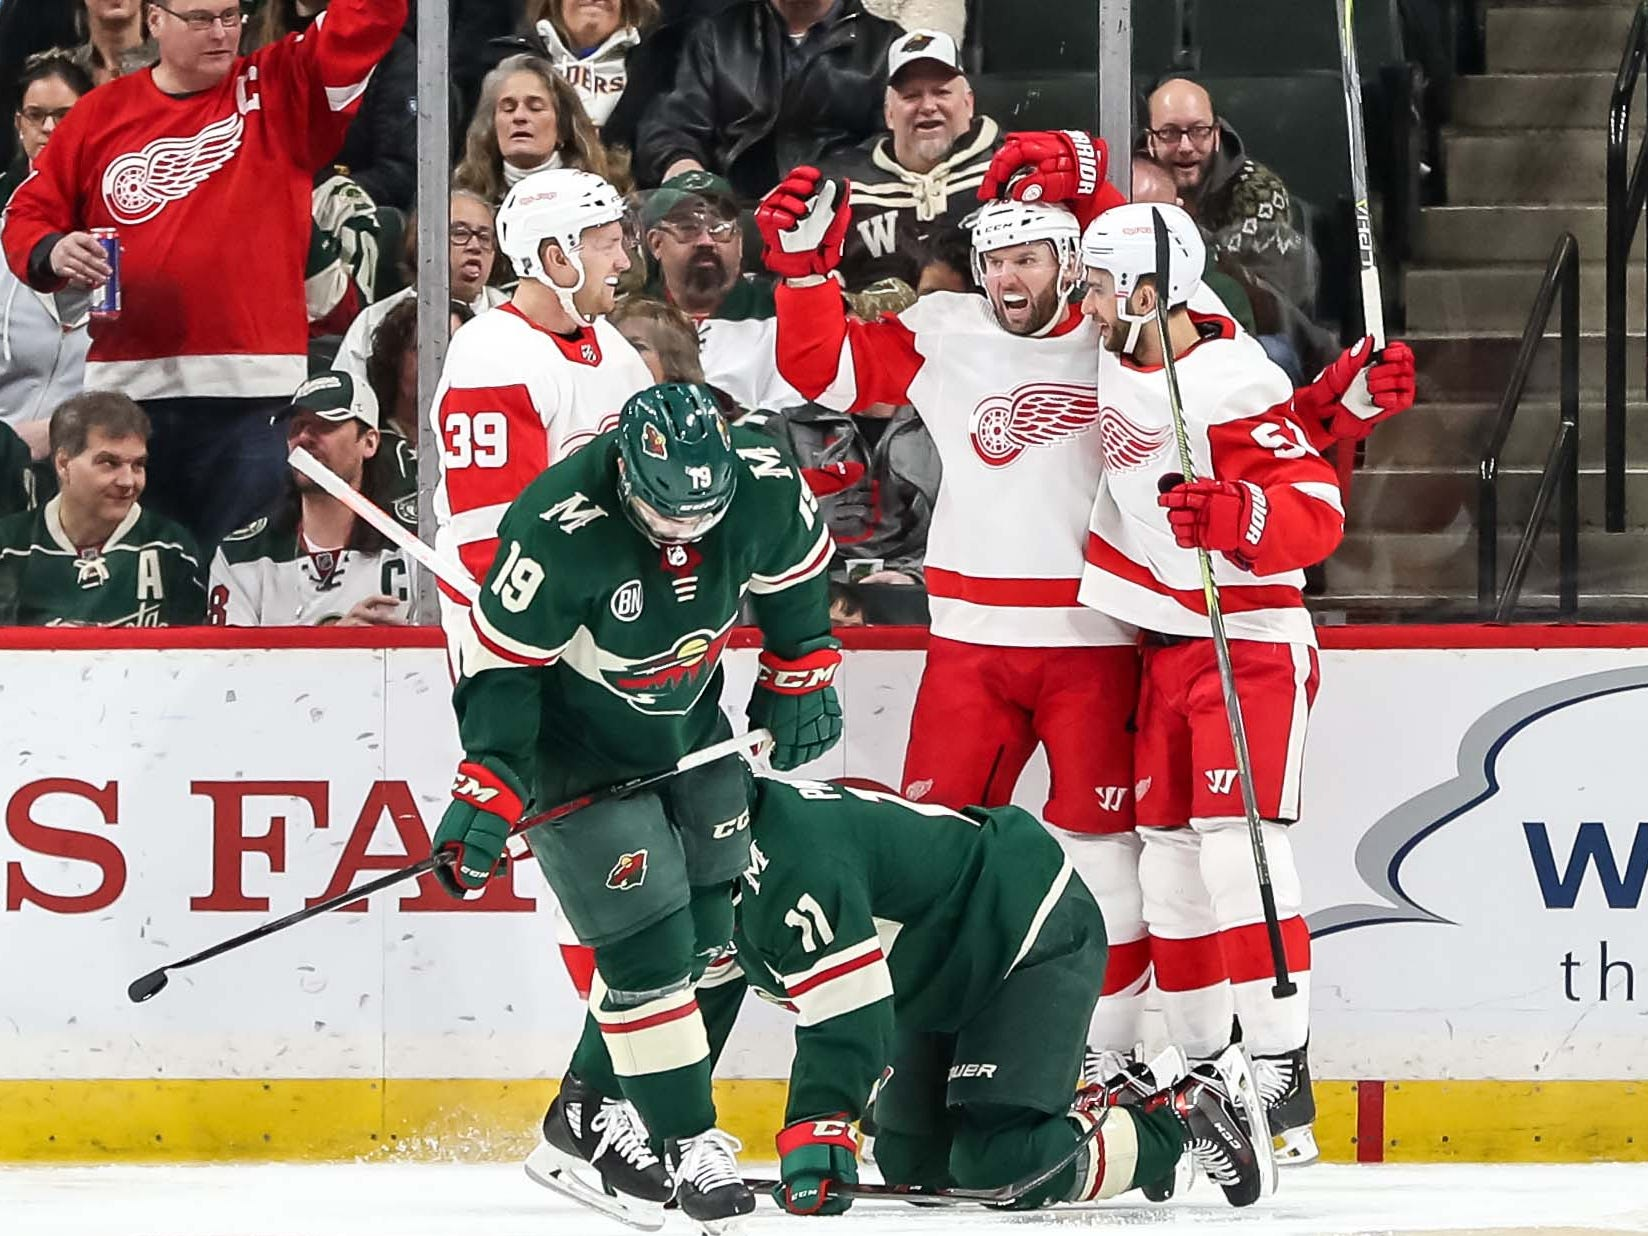 Detroit Red Wings forward Thomas Vanek, center, celebrates his goal with teammates during the second period against the Minnesota Wild, Jan. 12, 2019 in Saint Paul, Minn.